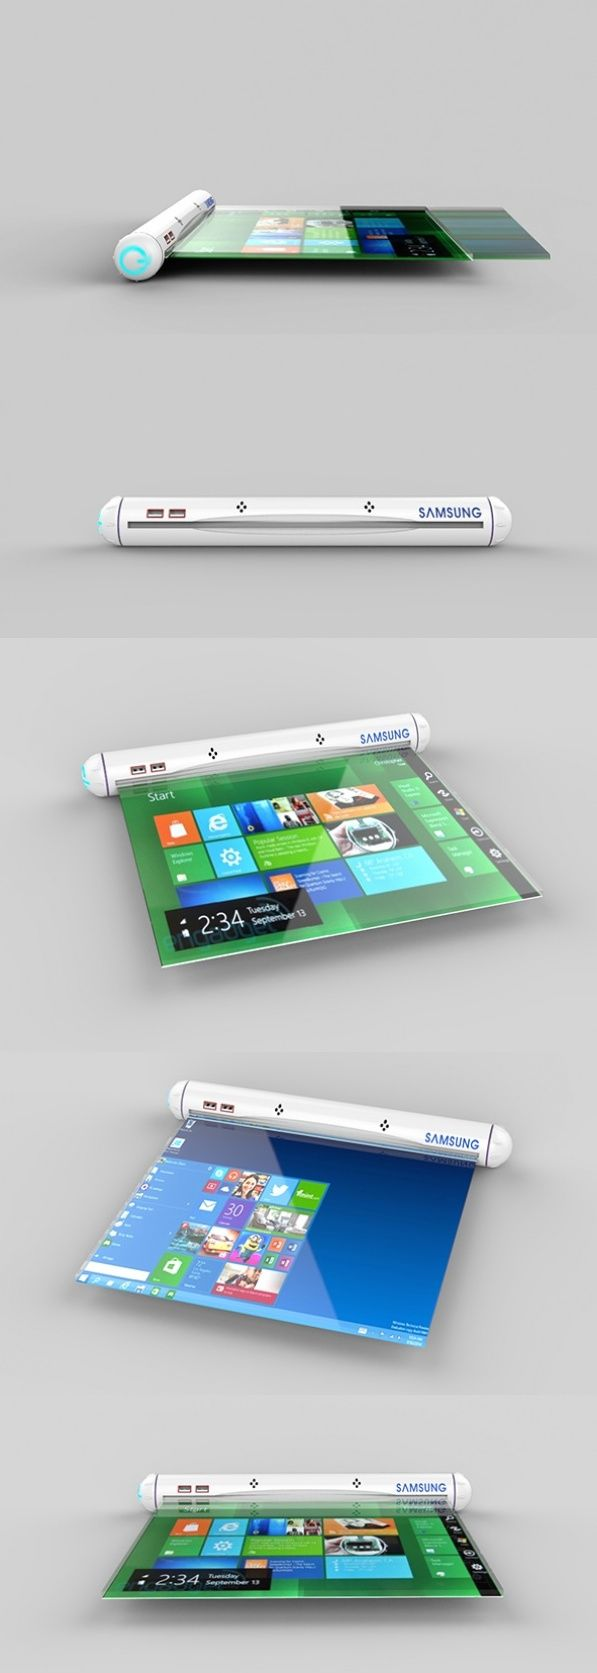 The Samsung Flexible Roll applies future #flex tech to create the most portable tablet…